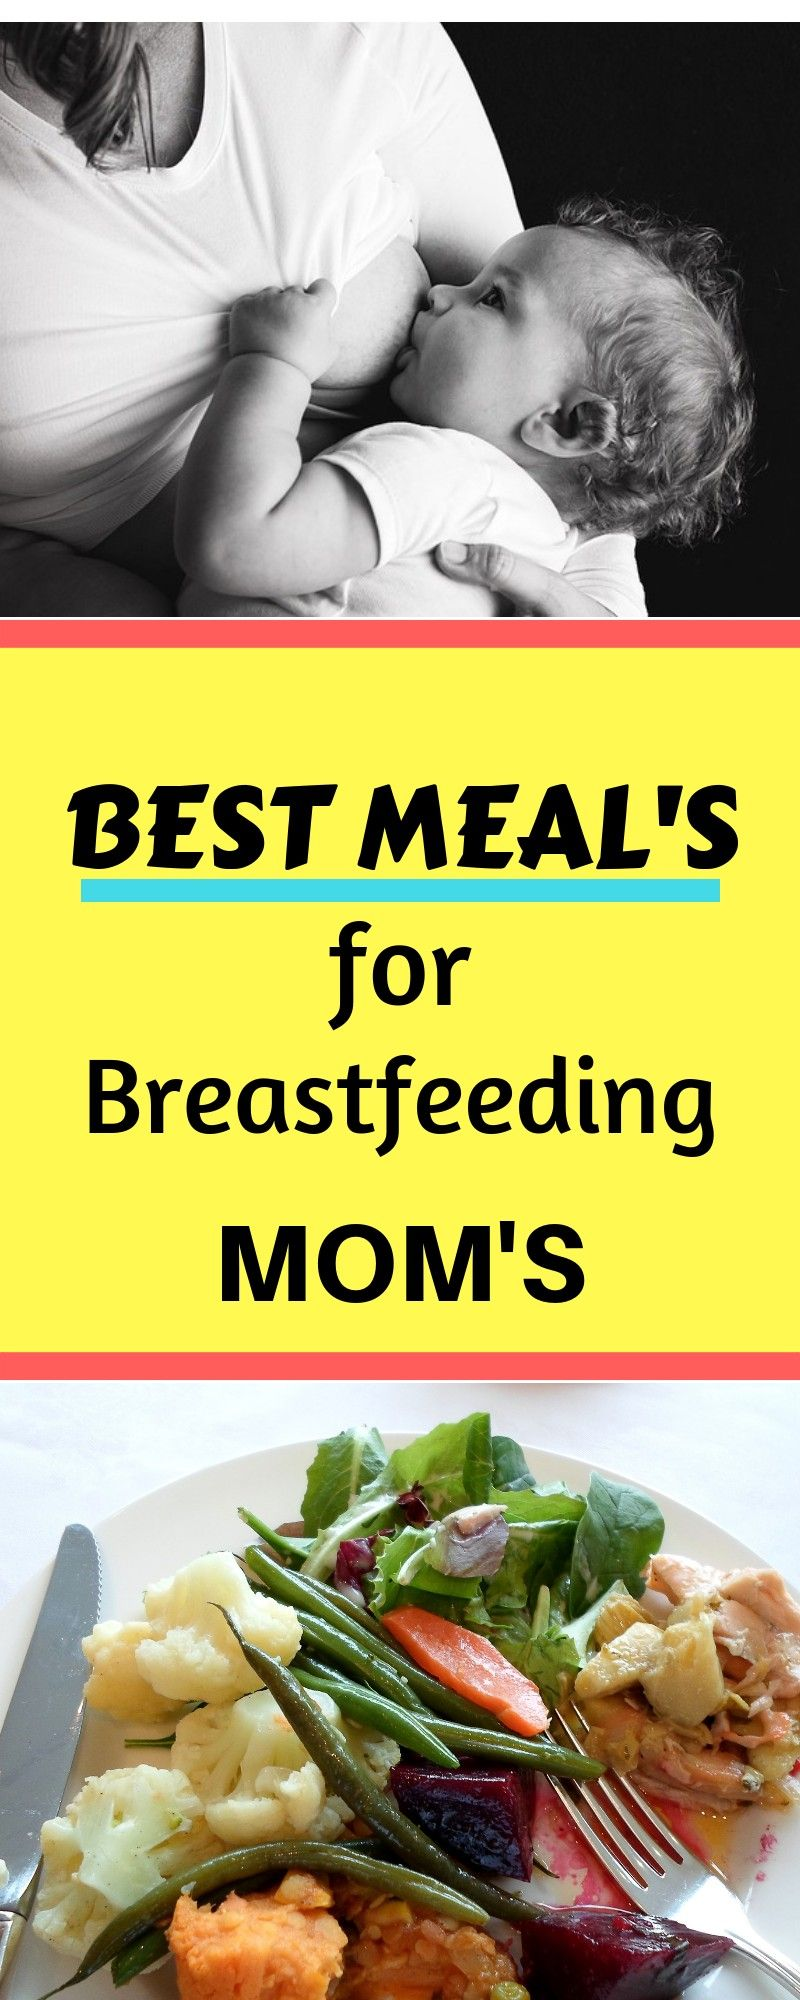 A List Of Best Foods For Breastfeeding Mothers With -9614